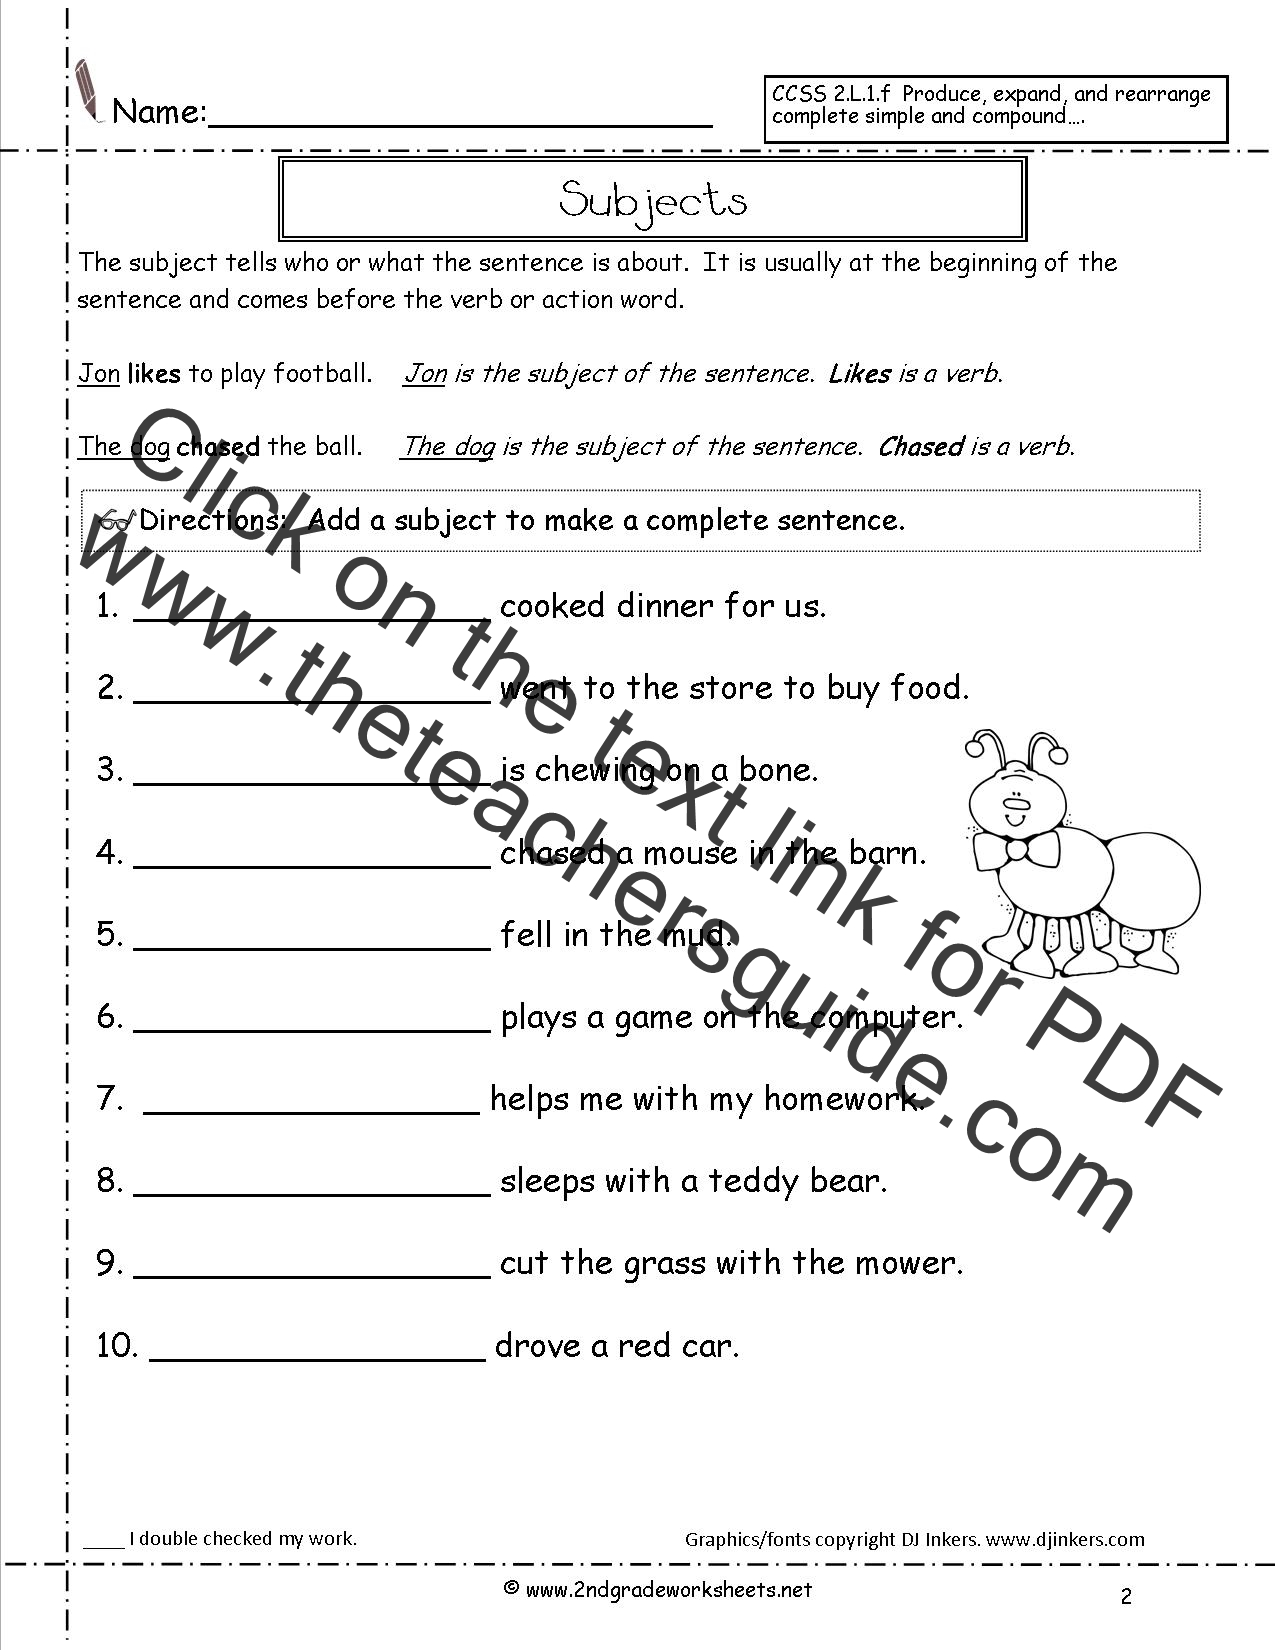 Free Worksheet Four Types Of Sentences Worksheet second grade sentences worksheets ccss 2 l 1 f subjects worksheet sentence subjects